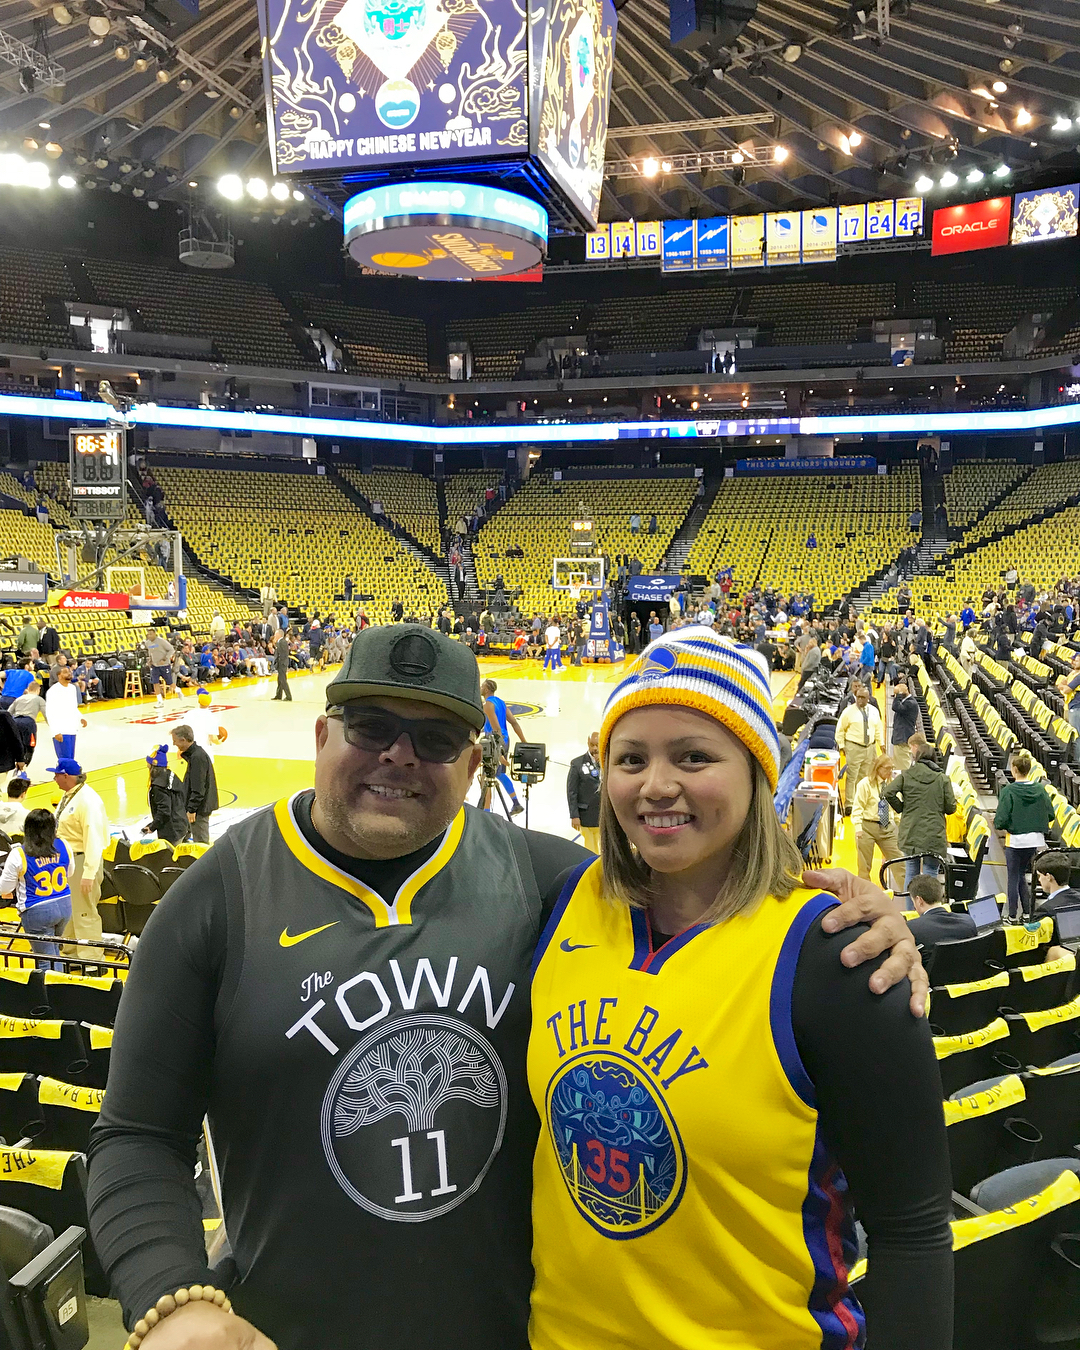 <div class='meta'><div class='origin-logo' data-origin='none'></div><span class='caption-text' data-credit='mr_mrsm0/Instagram'>Dub Nation, show us what you got! Share your Warriors fan pics with #abc7now to appear in this gallery, on air, or on our other social media platforms.</span></div>